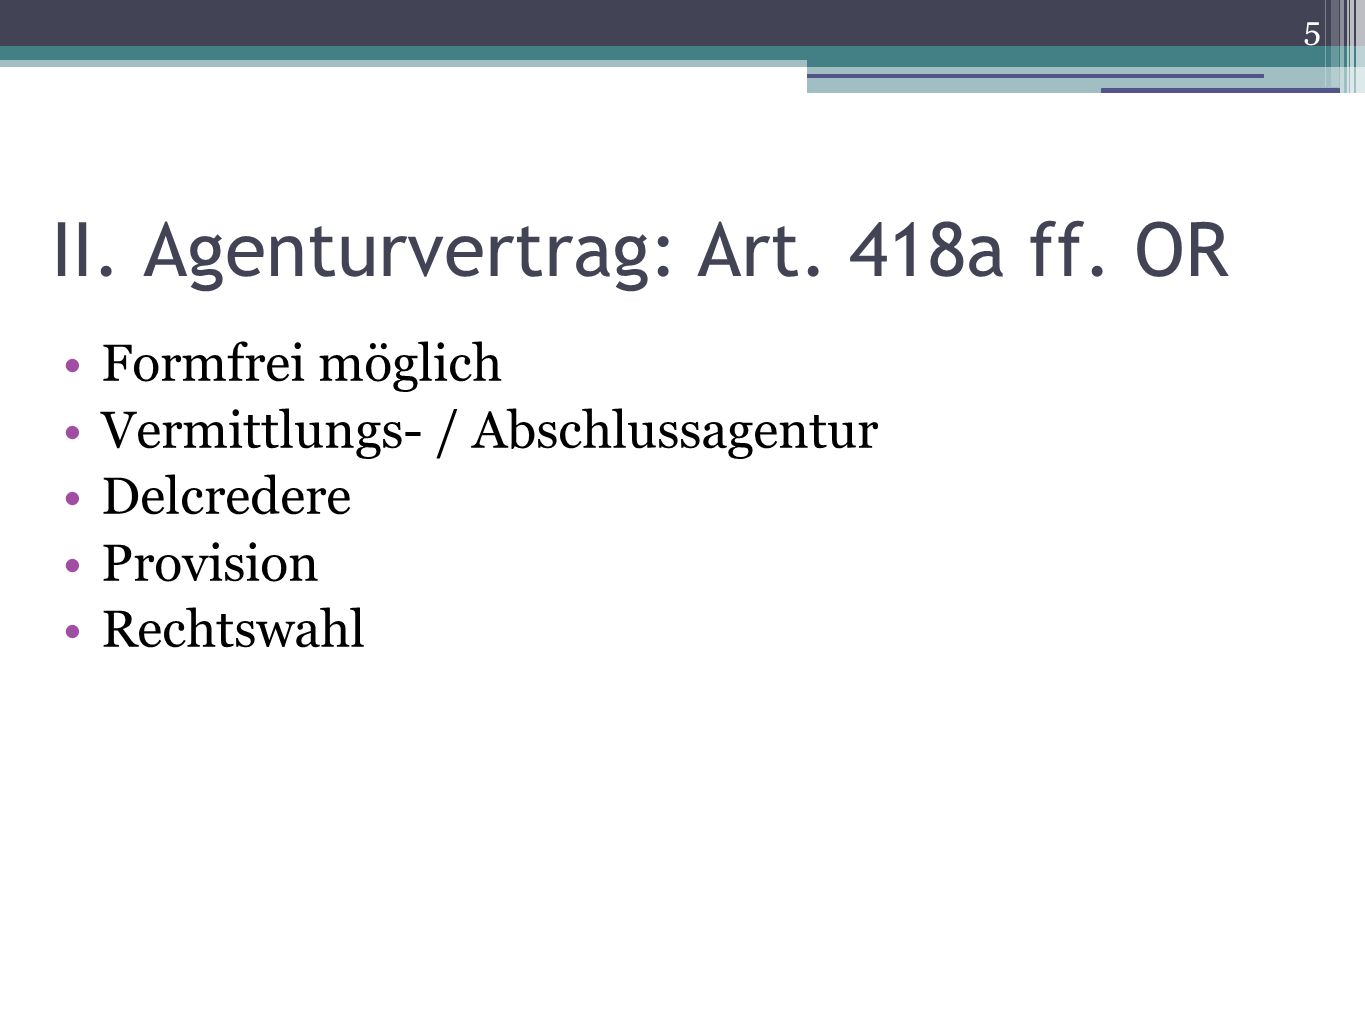 II. Agenturvertrag: Art. 418a ff. OR